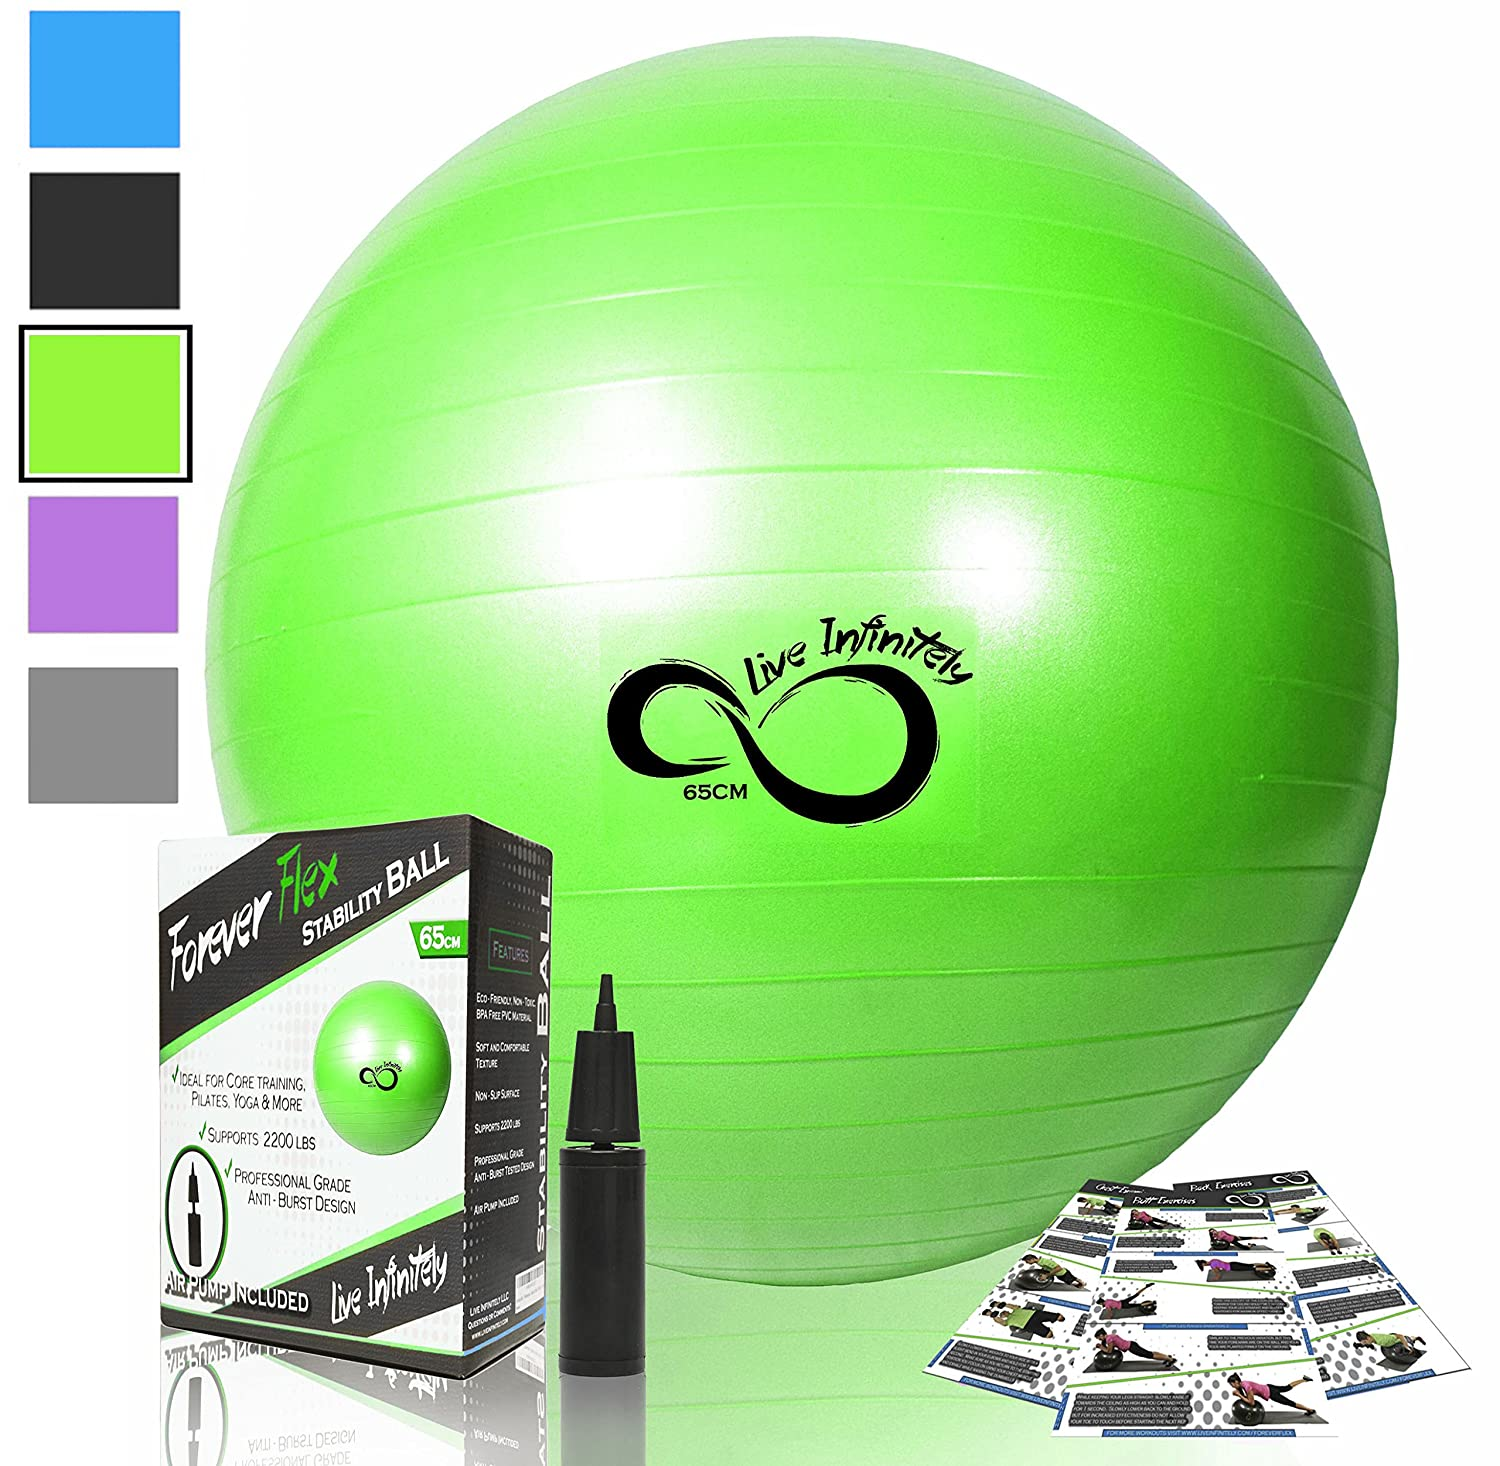 Amazon.com : Exercise Ball  Professional Grade Exercise Equipment Anti  Burst Tested With Hand Pump  Supports 2200lbs  Includes Workout Guide  Access  ...